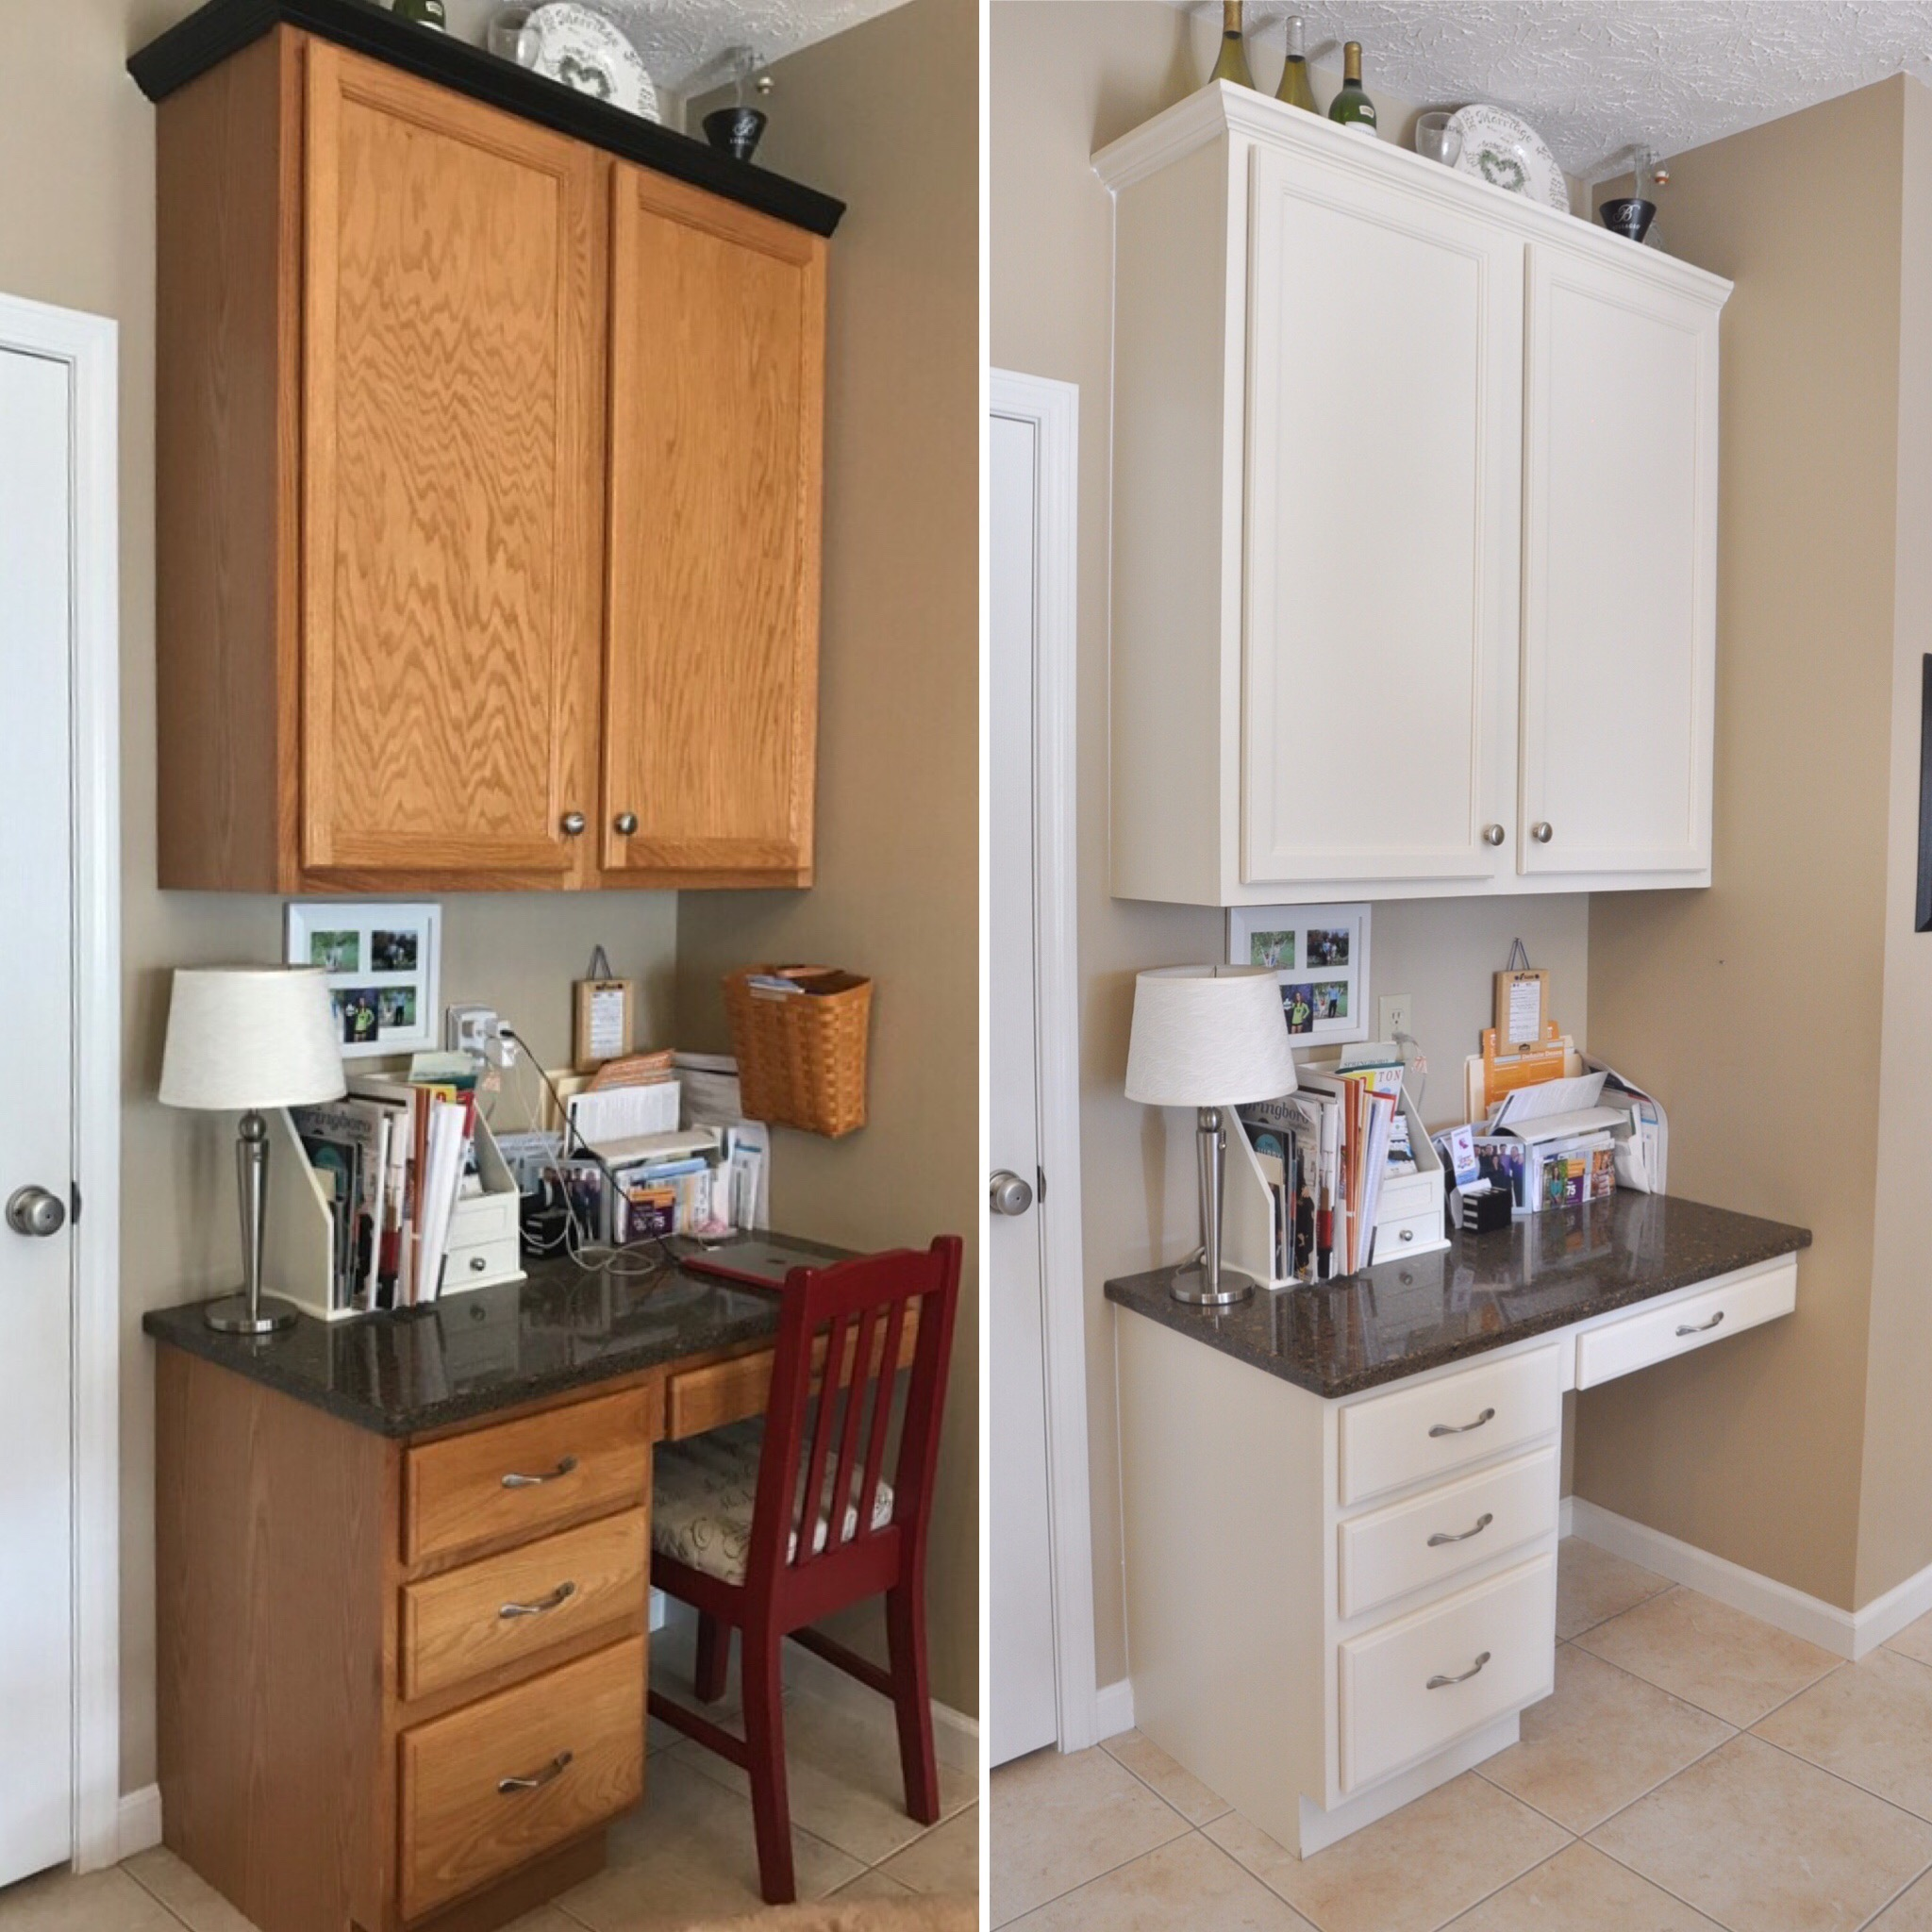 Benjamin Moore Advance for Cabinets & Painting Cabinets: Benjamin Moore Advance vs. PPG Breakthrough ...